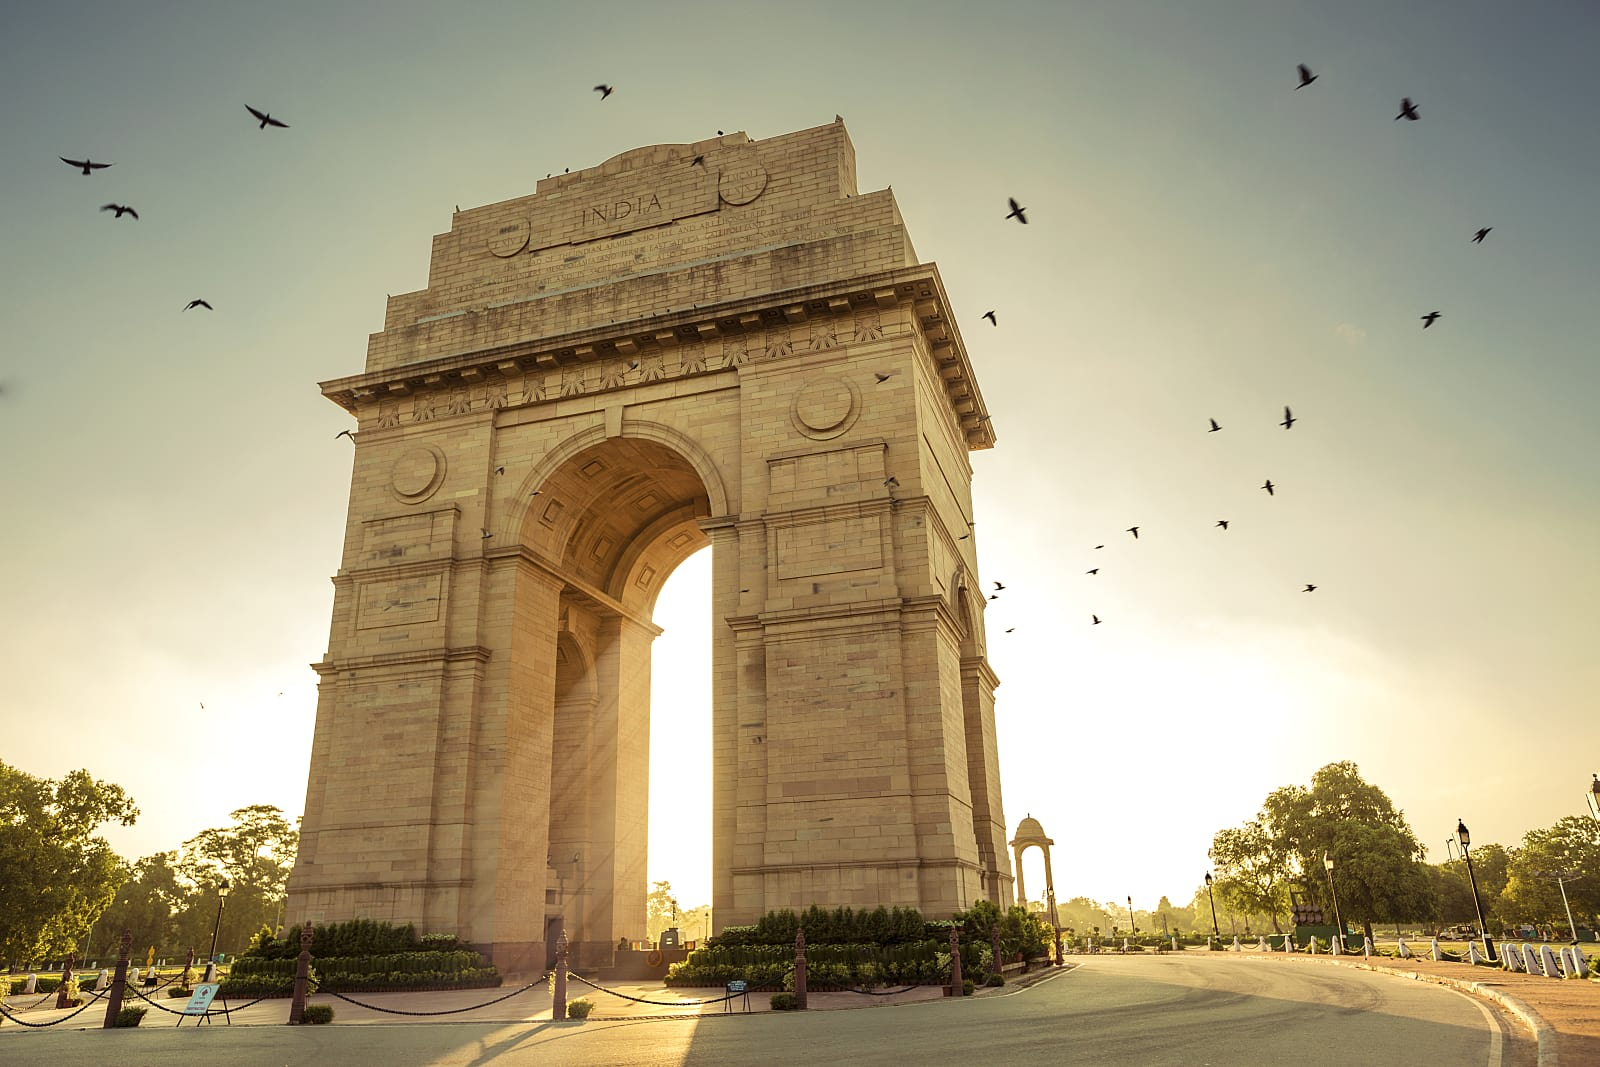 Spend the evening at the India Gate